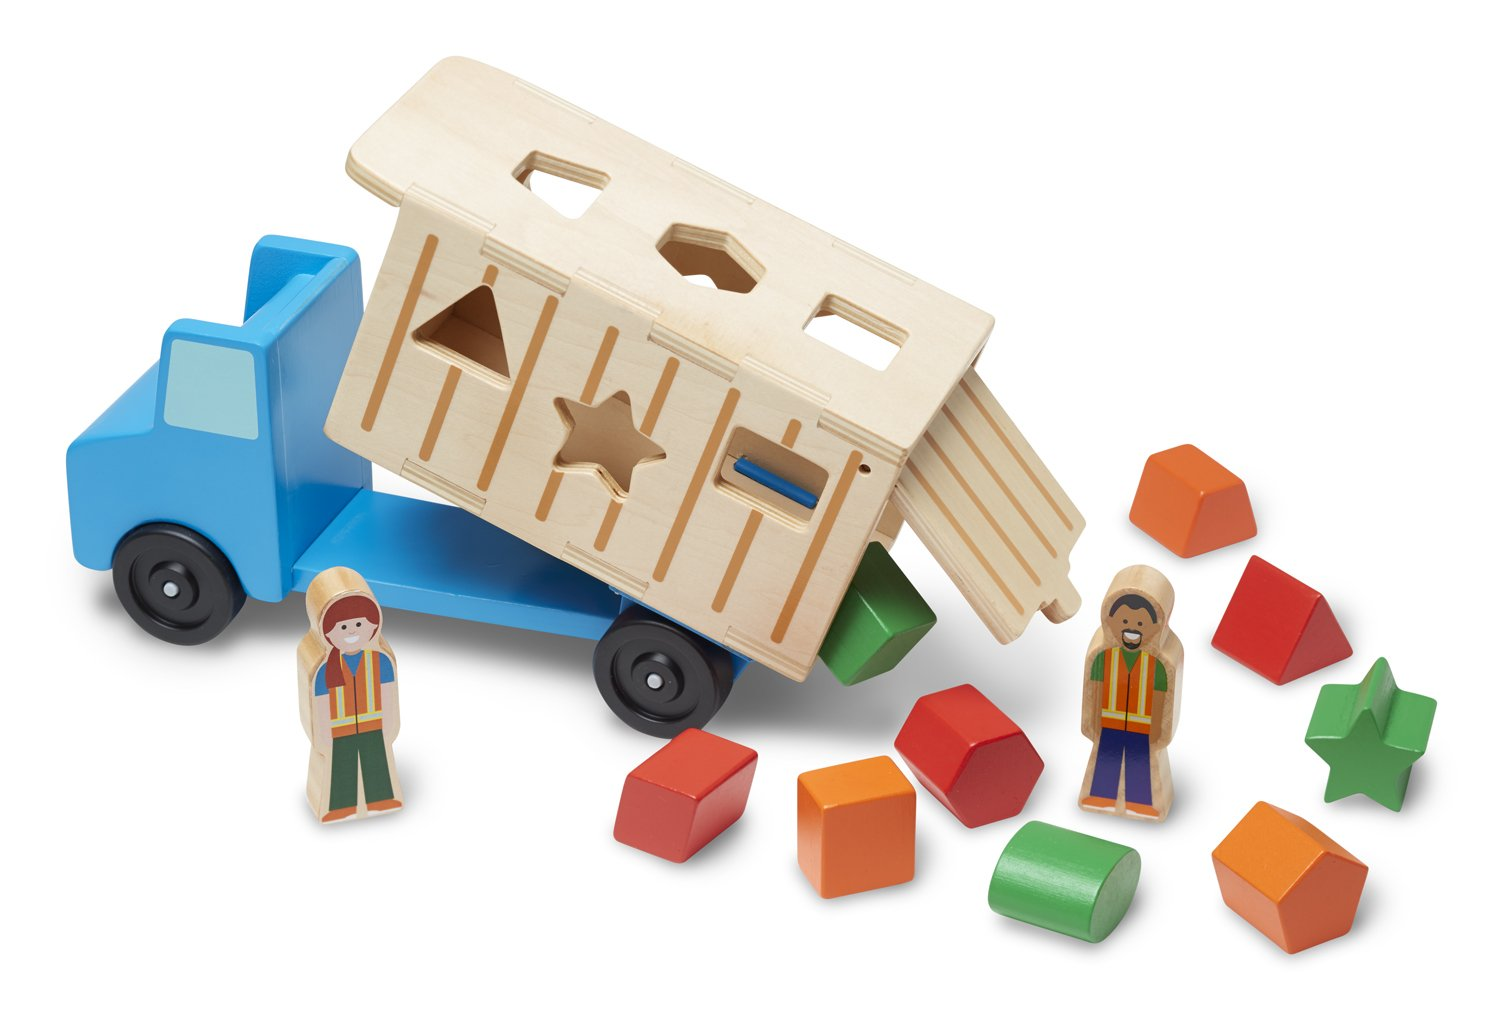 Melissa & Doug Shape-Sorting Wooden Dump Truck Toy, Quality Craftsmanship, 9 Colorful Shapes and 2 Play Figures, 7.5'' H x 10.75'' W x 4.75'' L by Melissa & Doug (Image #1)